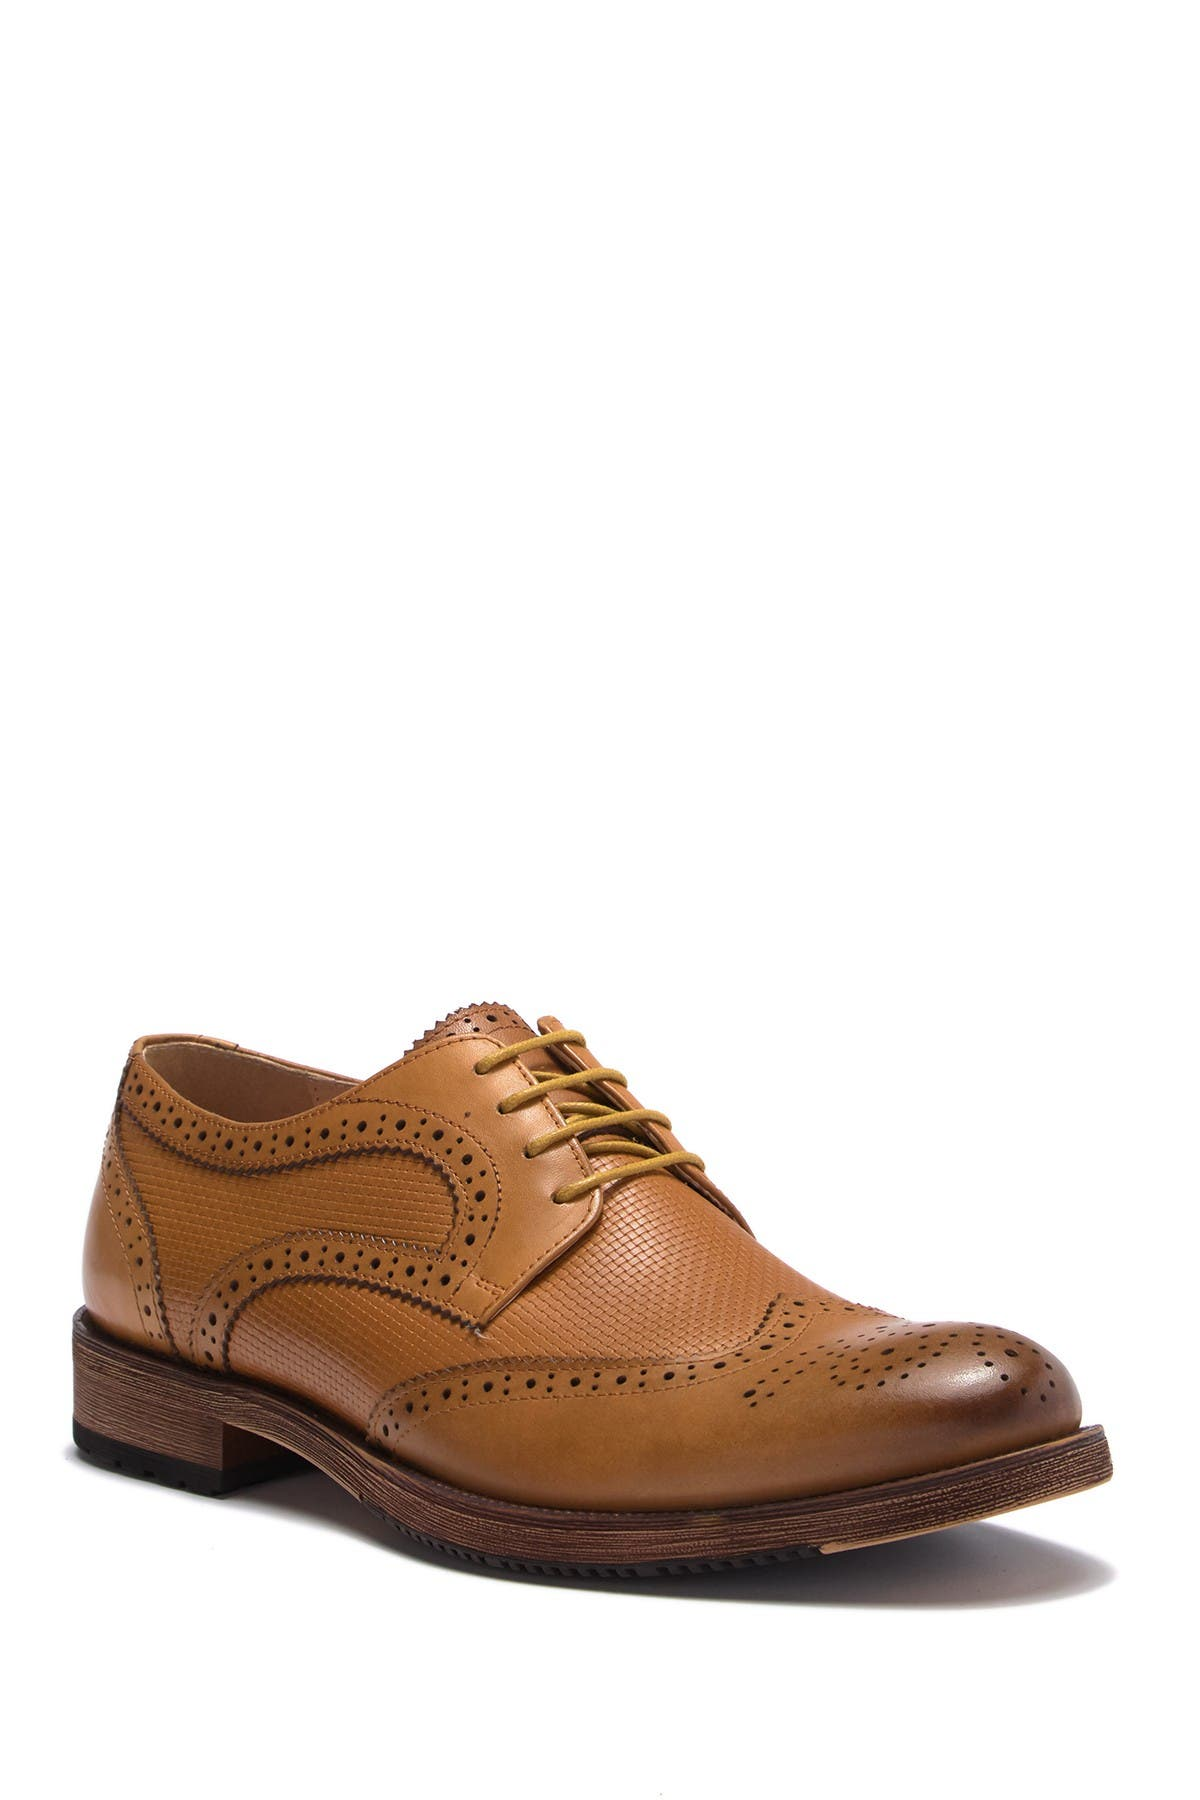 Image of English Laundry Sailbury Leather Derby